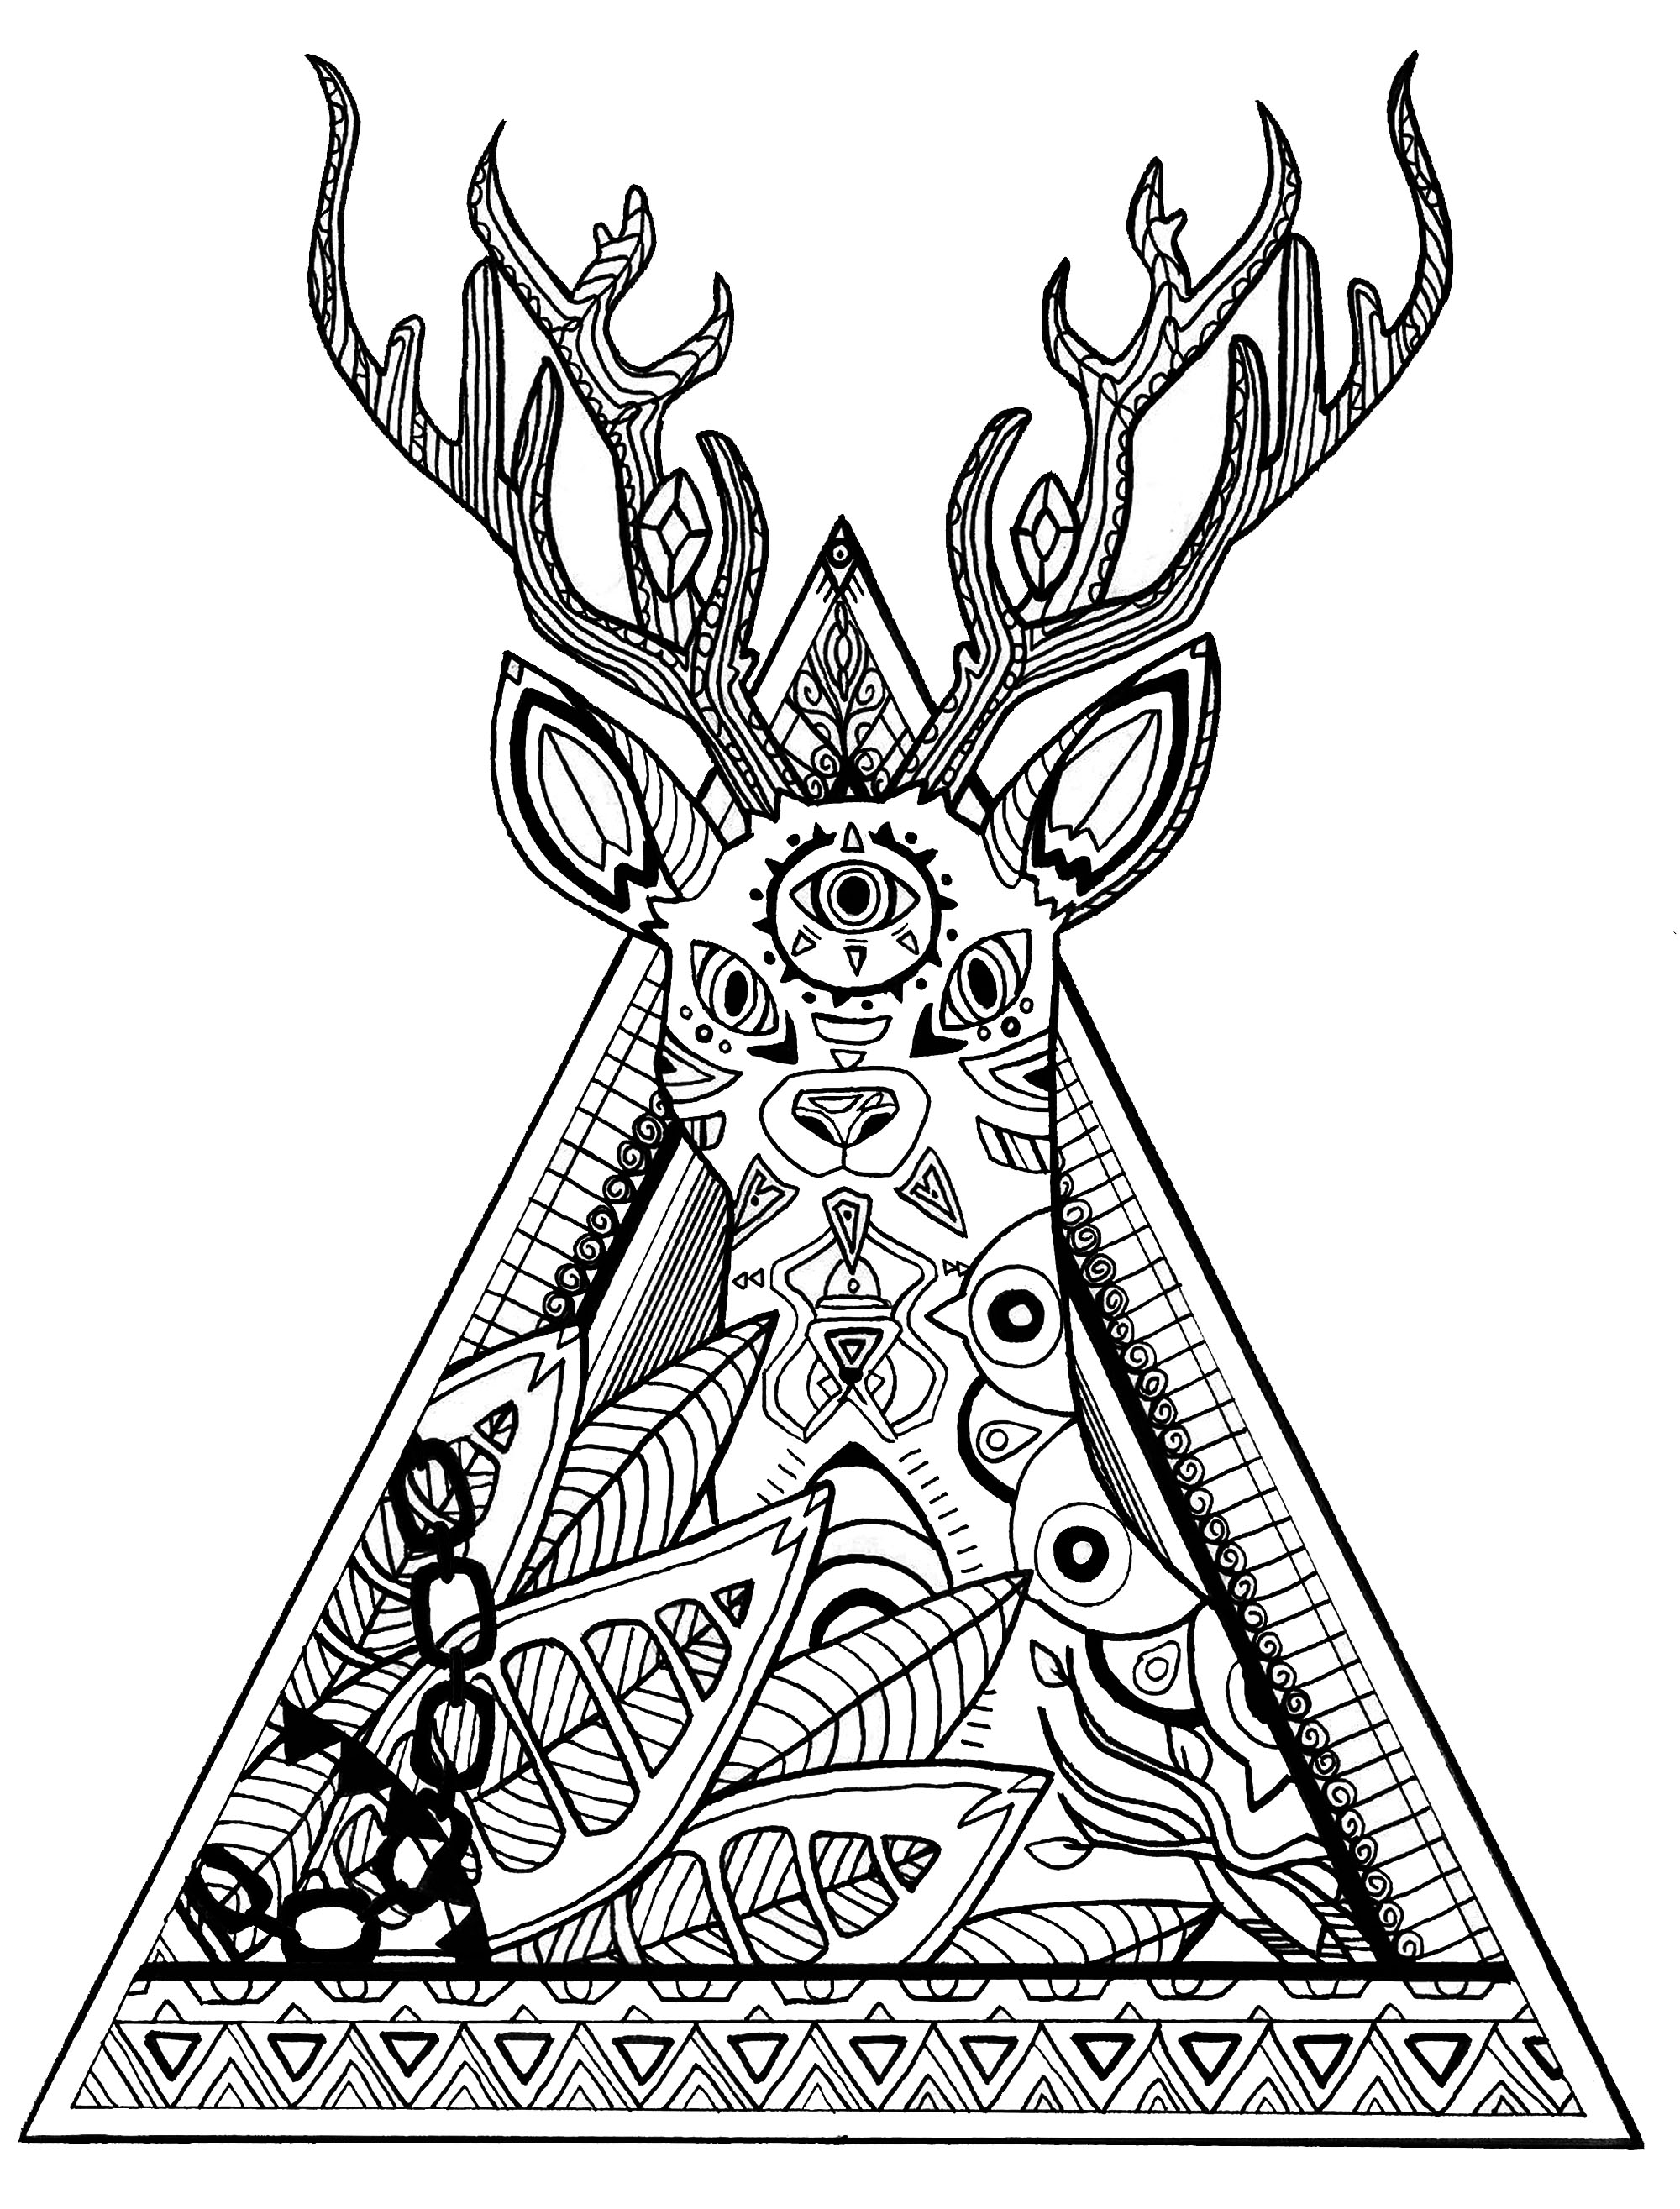 beautiful and mysterious deer from the gallery animals artist pauline